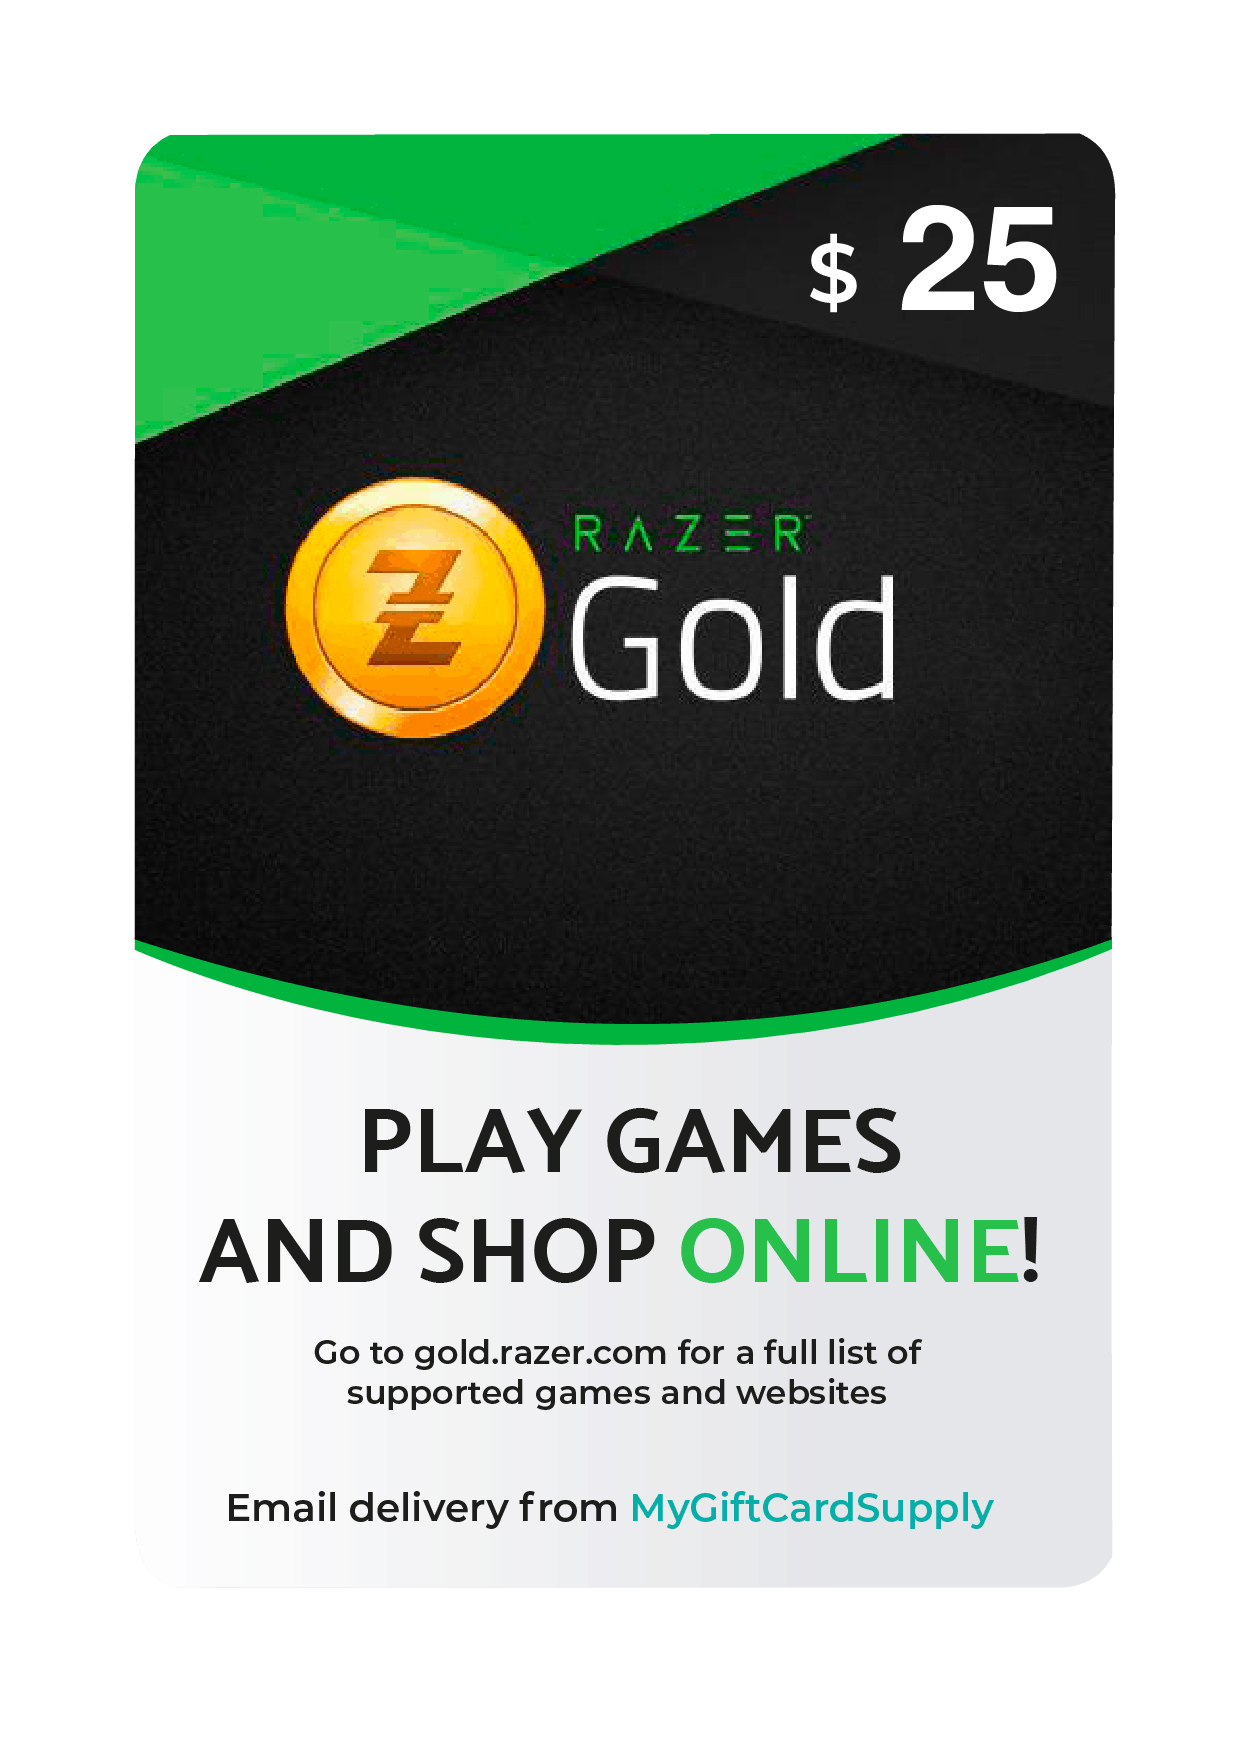 Buy Razer Gold Gift Cards Digital Email Delivery Mygiftcardsupply